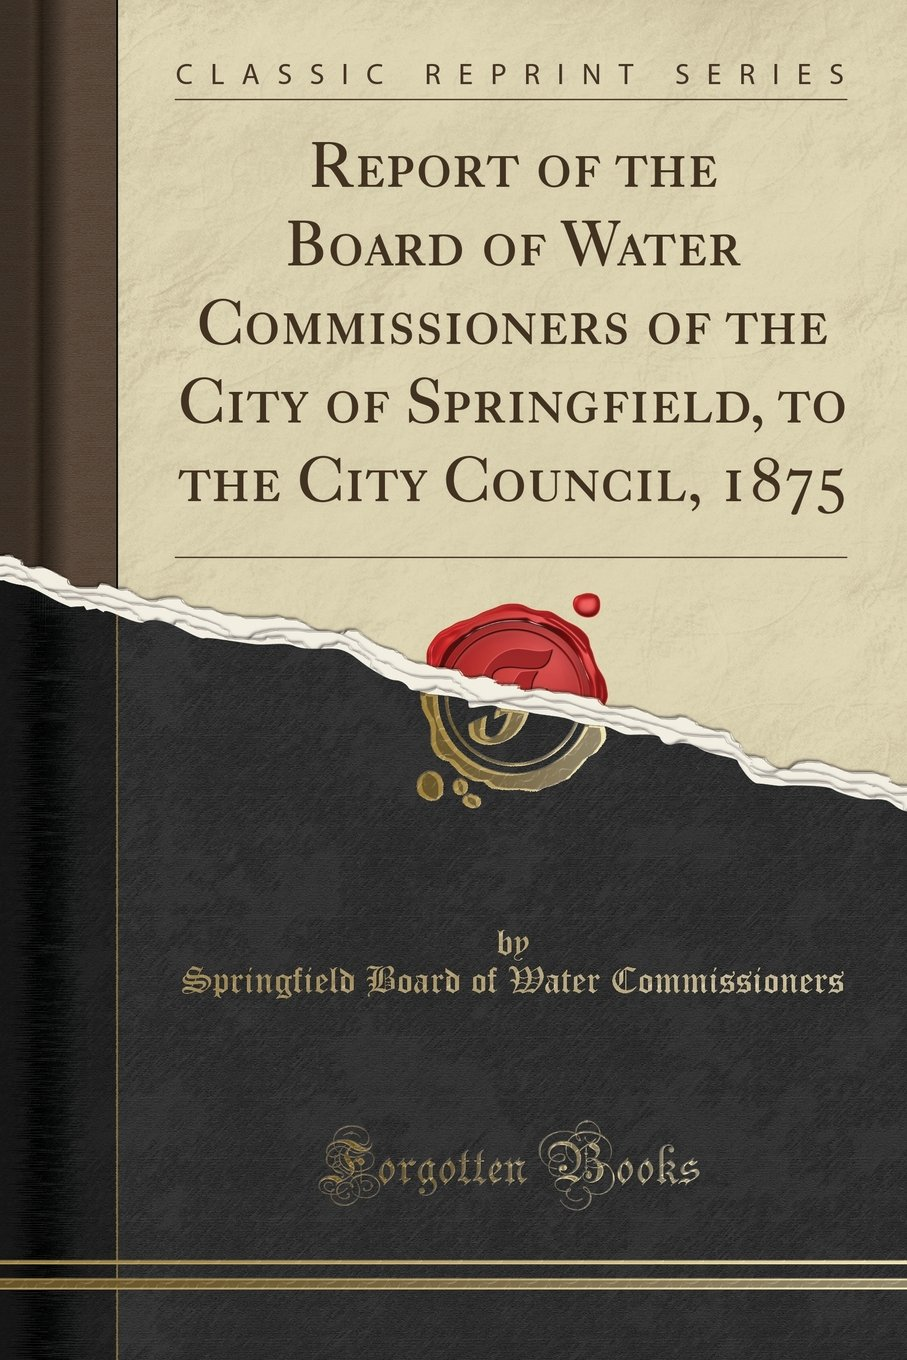 Read Online Report of the Board of Water Commissioners of the City of Springfield, to the City Council, 1875 (Classic Reprint) ebook